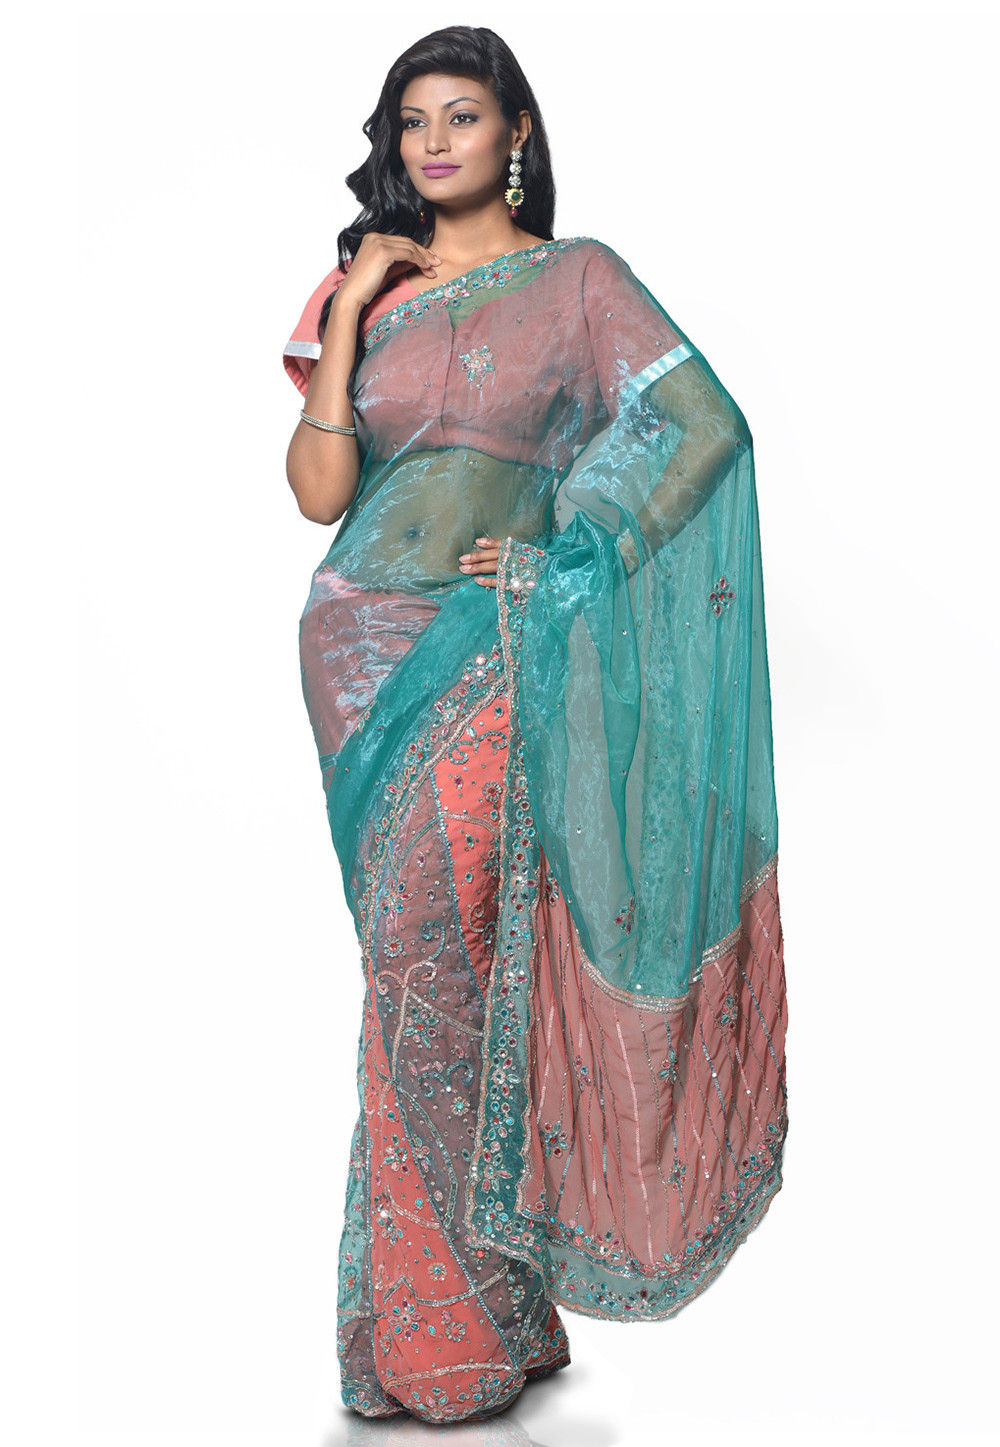 Lehenga Style Tissue Saree Peach and Turquoise